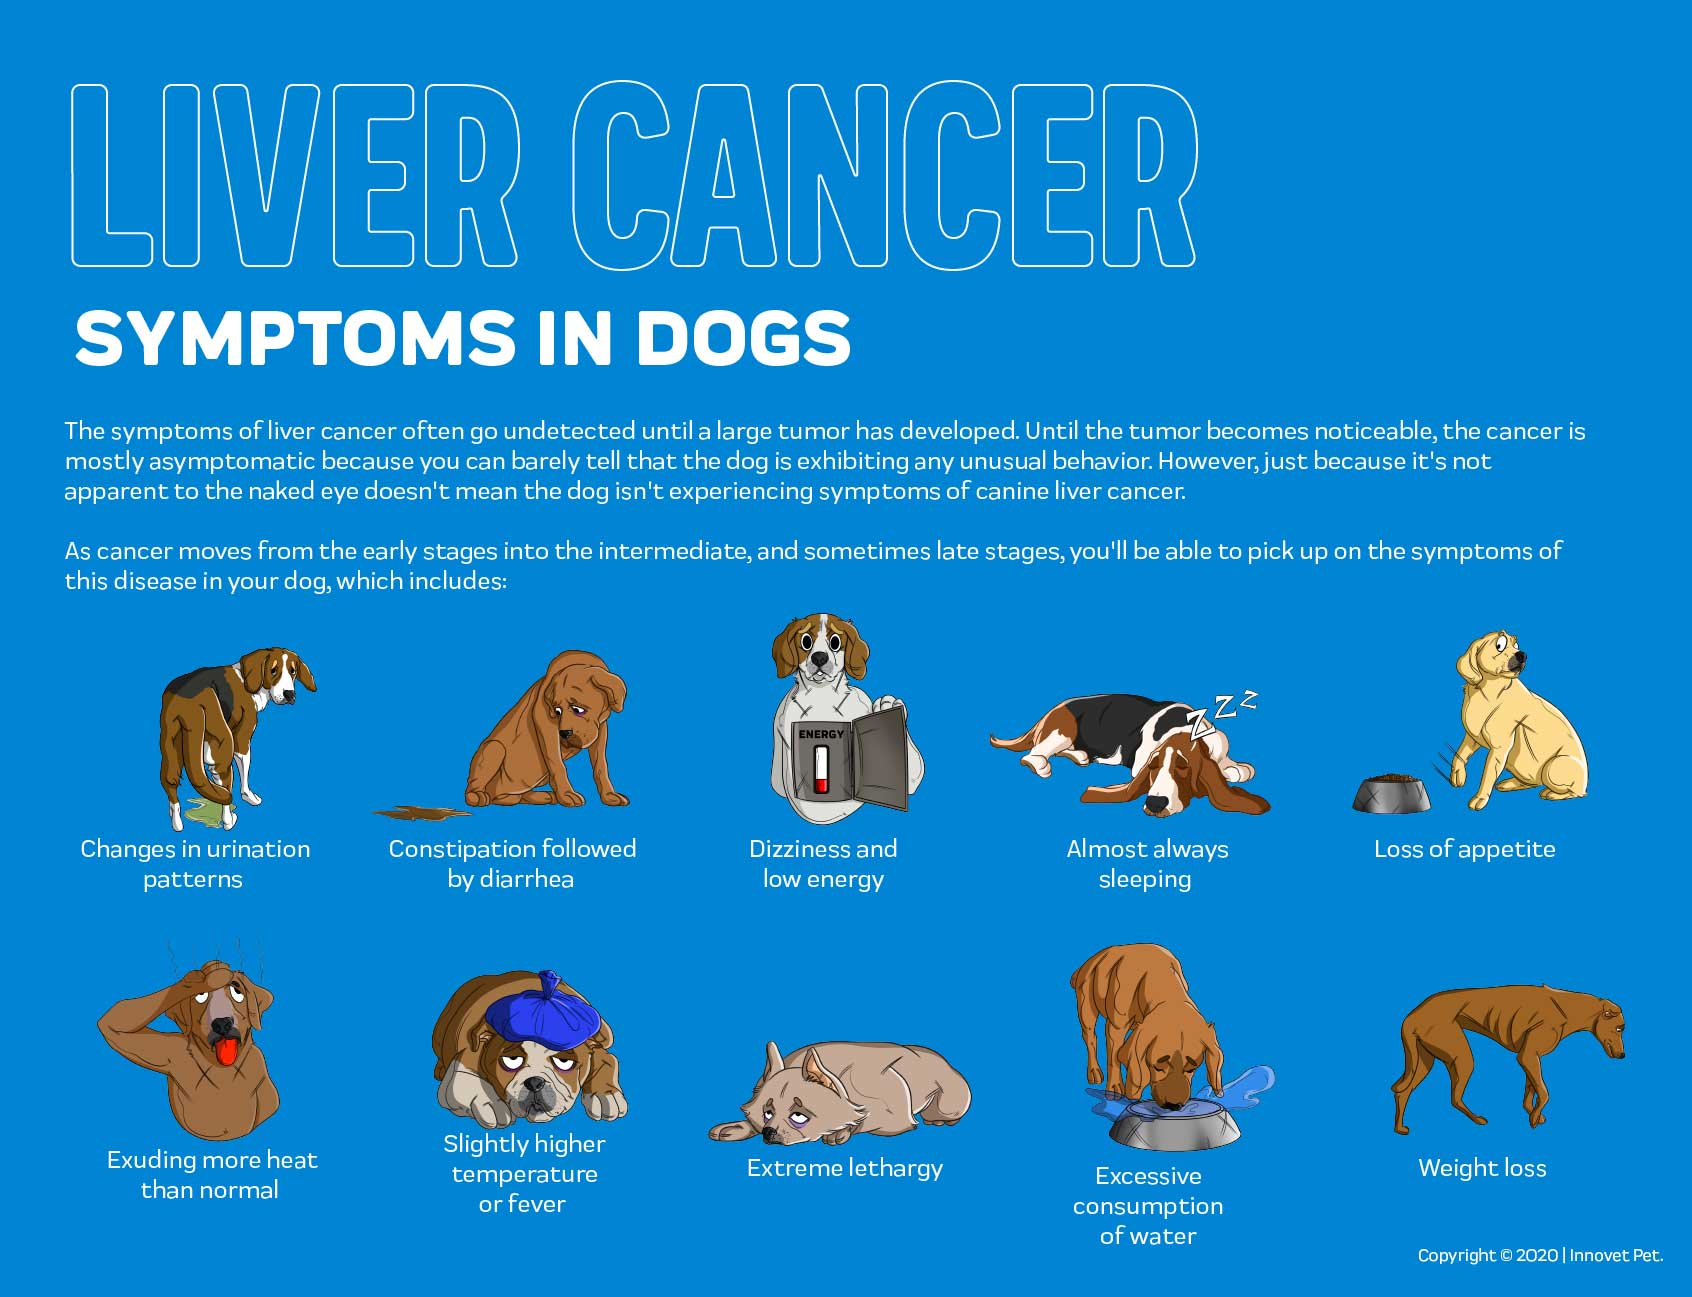 Liver Cancer in Dogs Symptoms